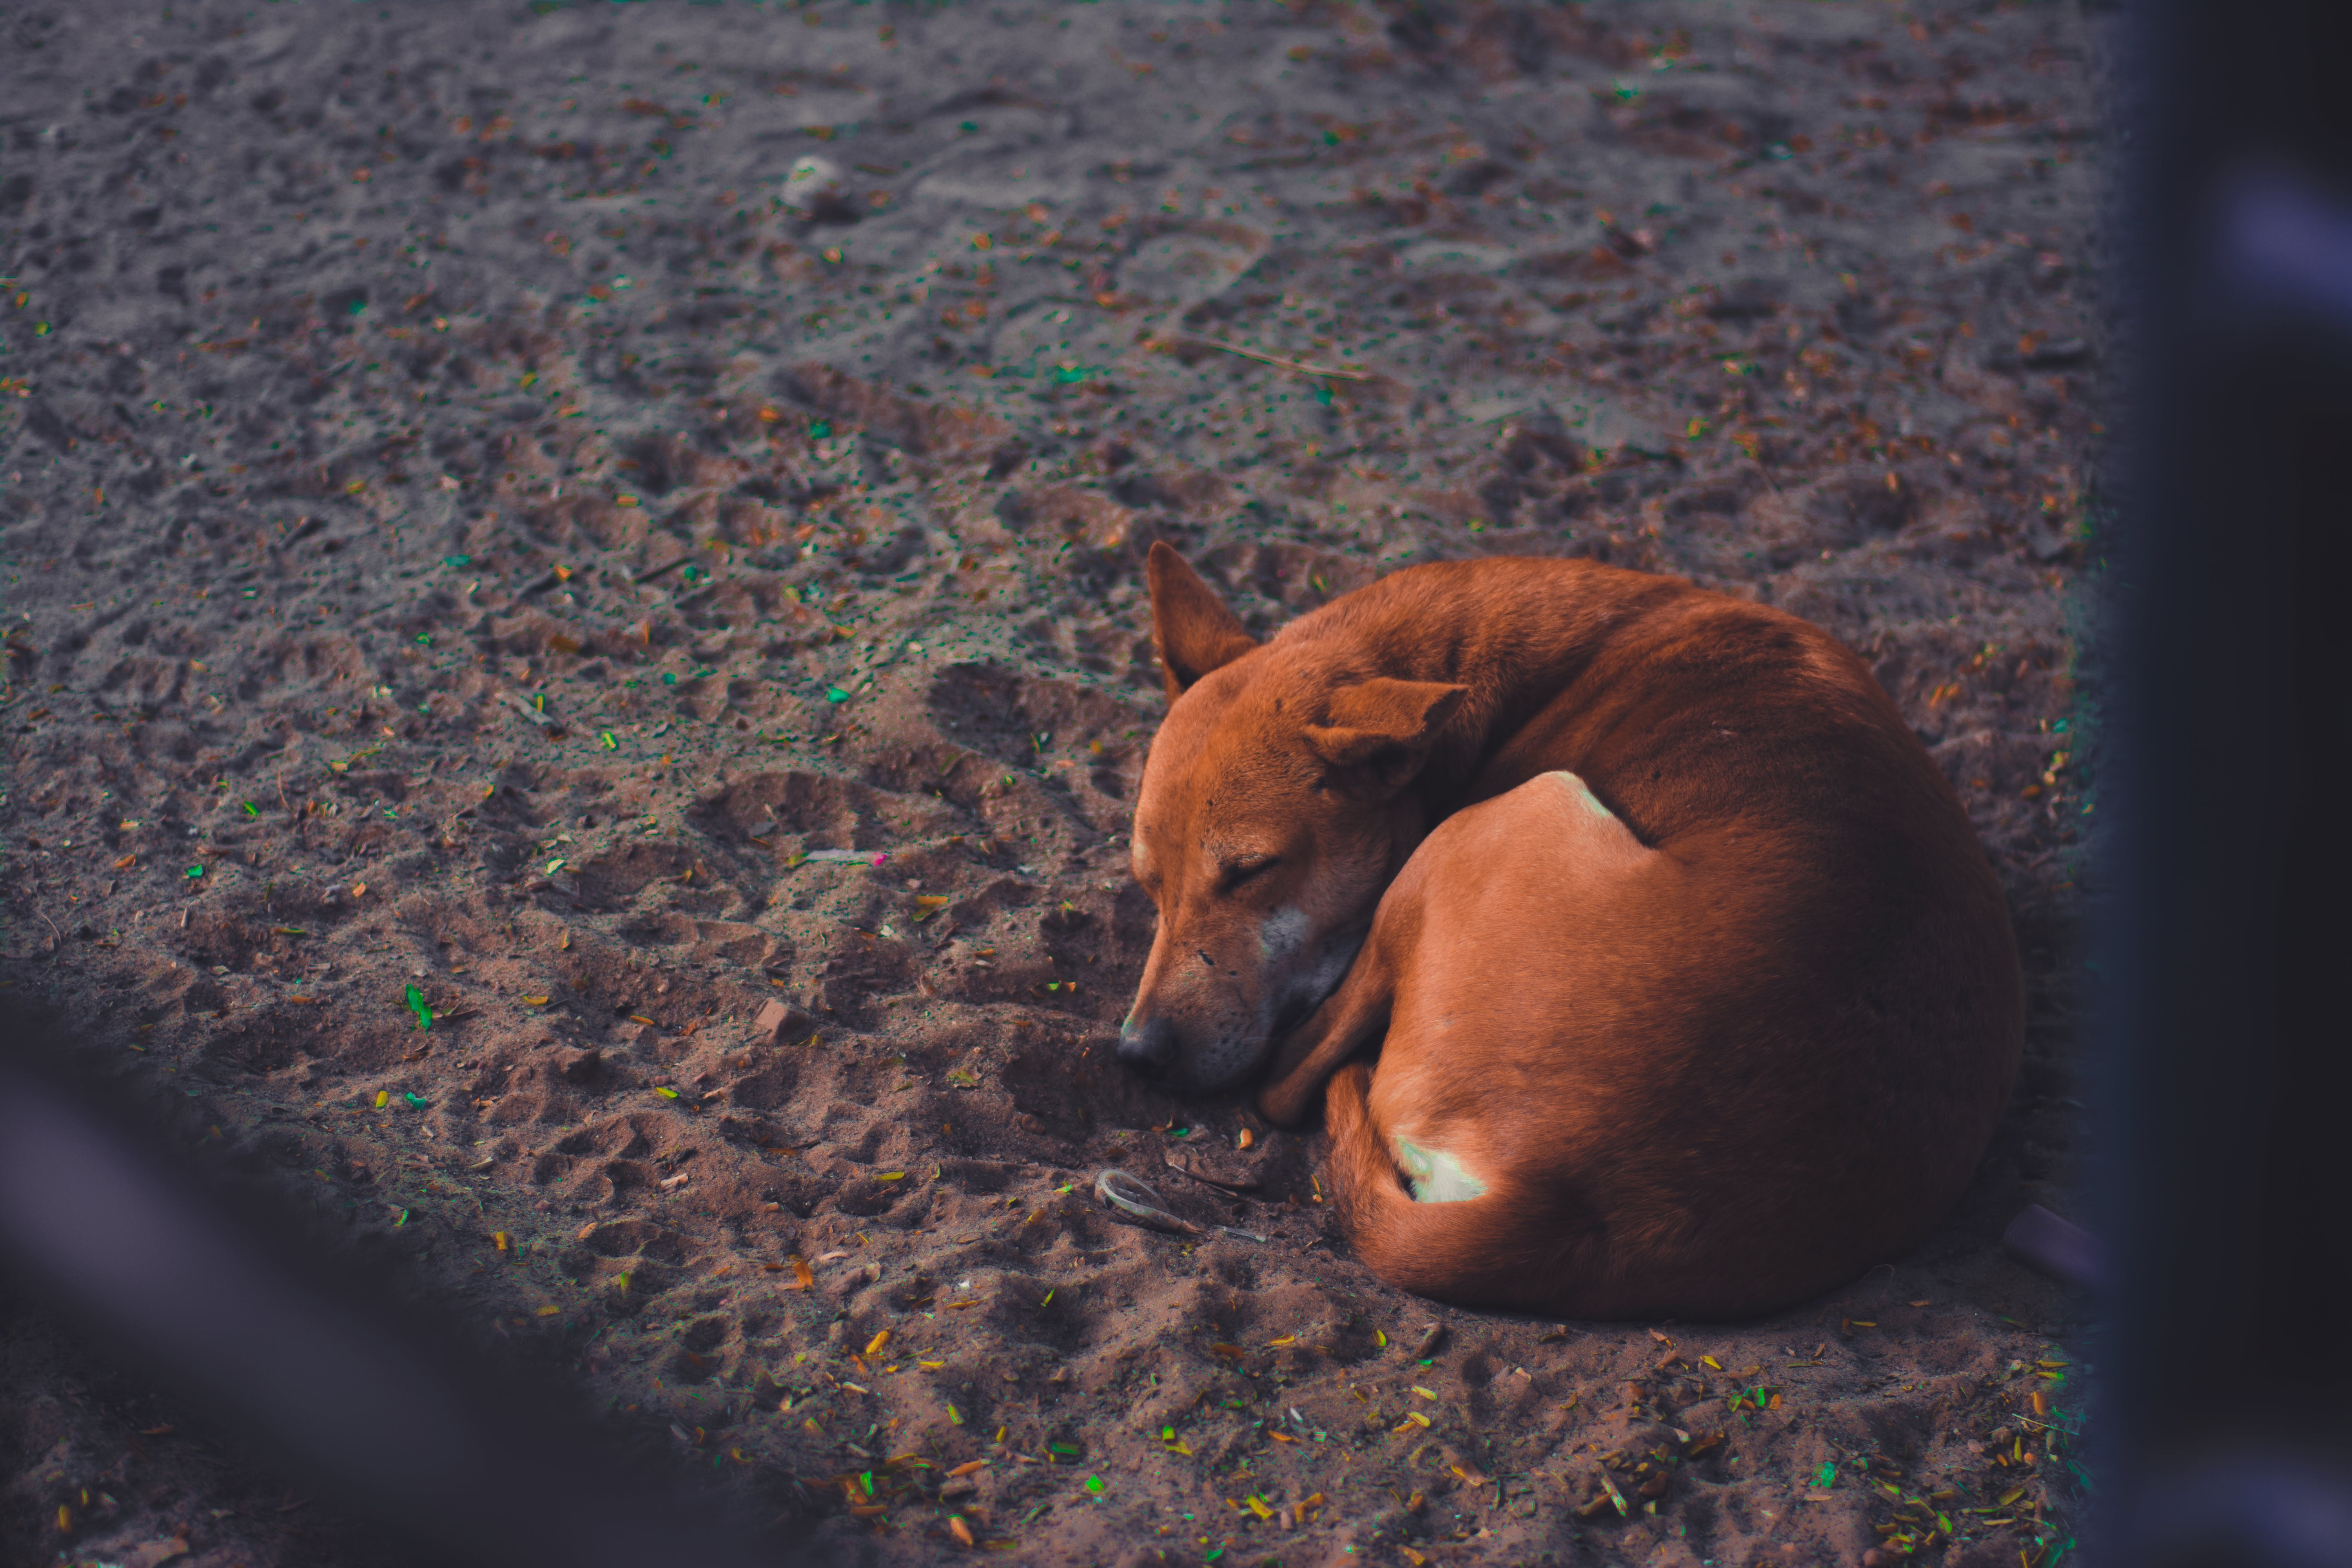 Short-coated Dog Sleeping on Soil Ground at Daytime